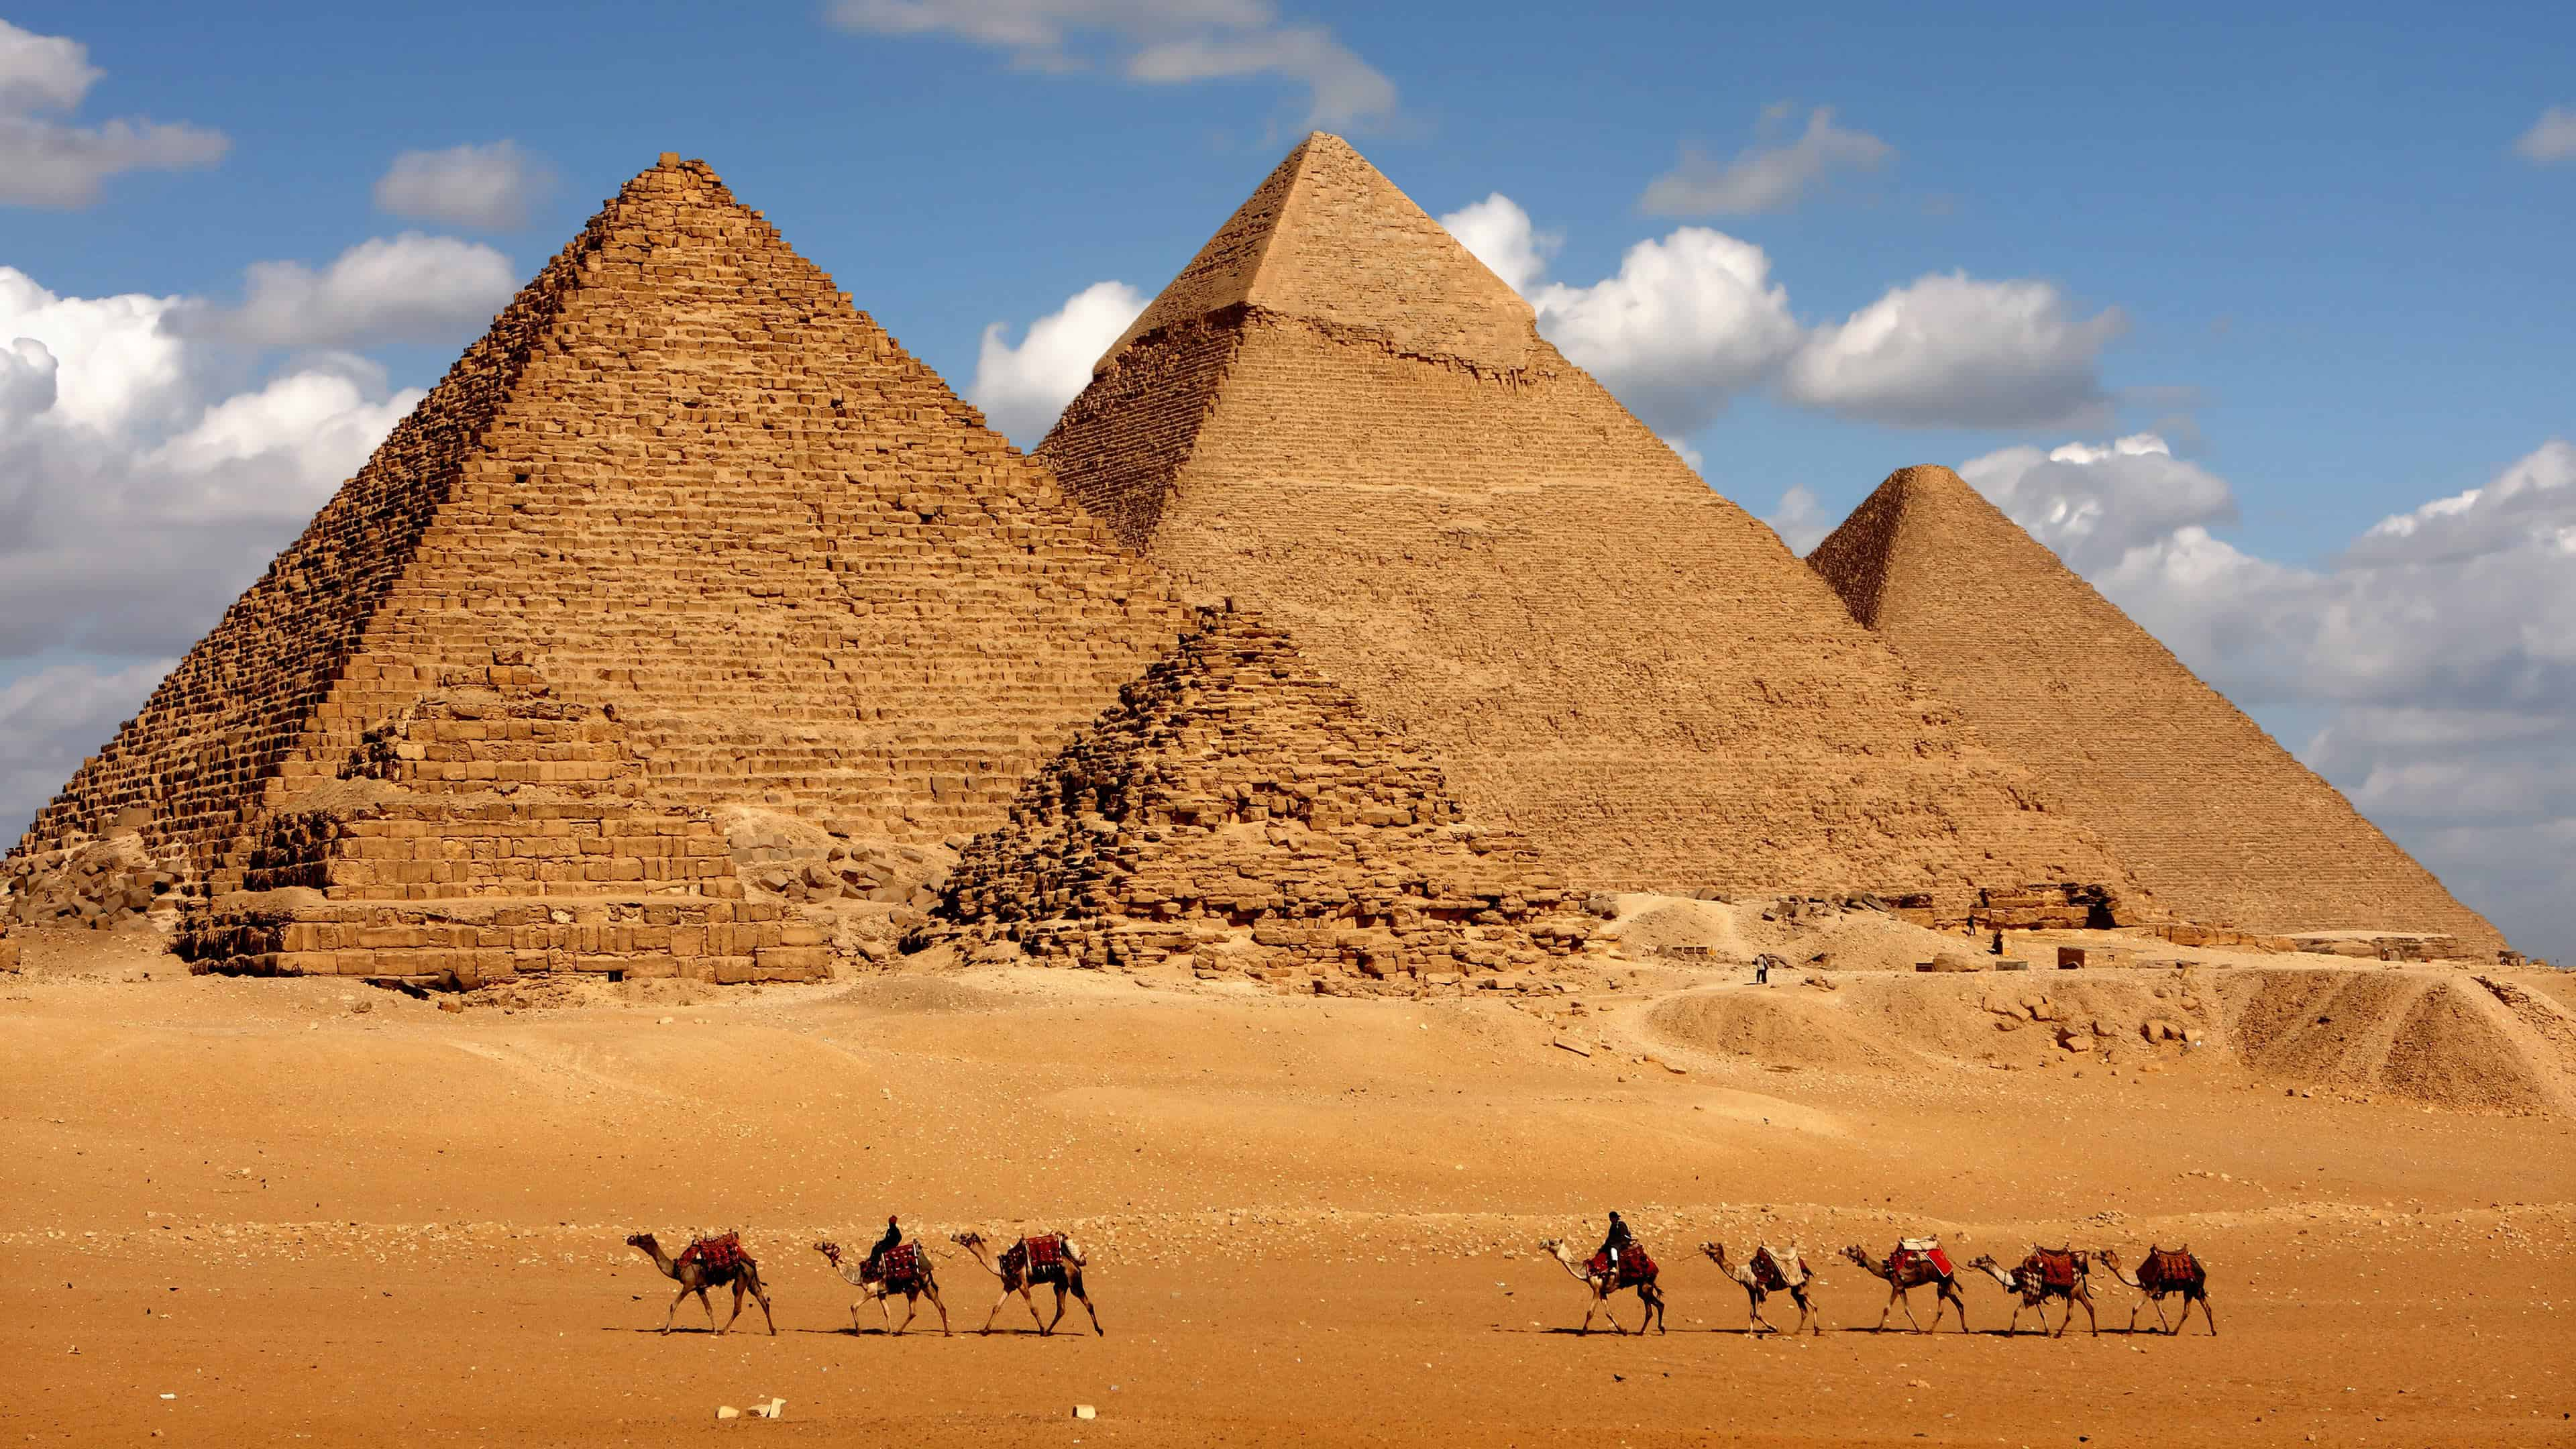 https://pixelz.cc/wp-content/uploads/2018/07/pyramids-and-camels-egypt-uhd-4k-wallpaper.jpg